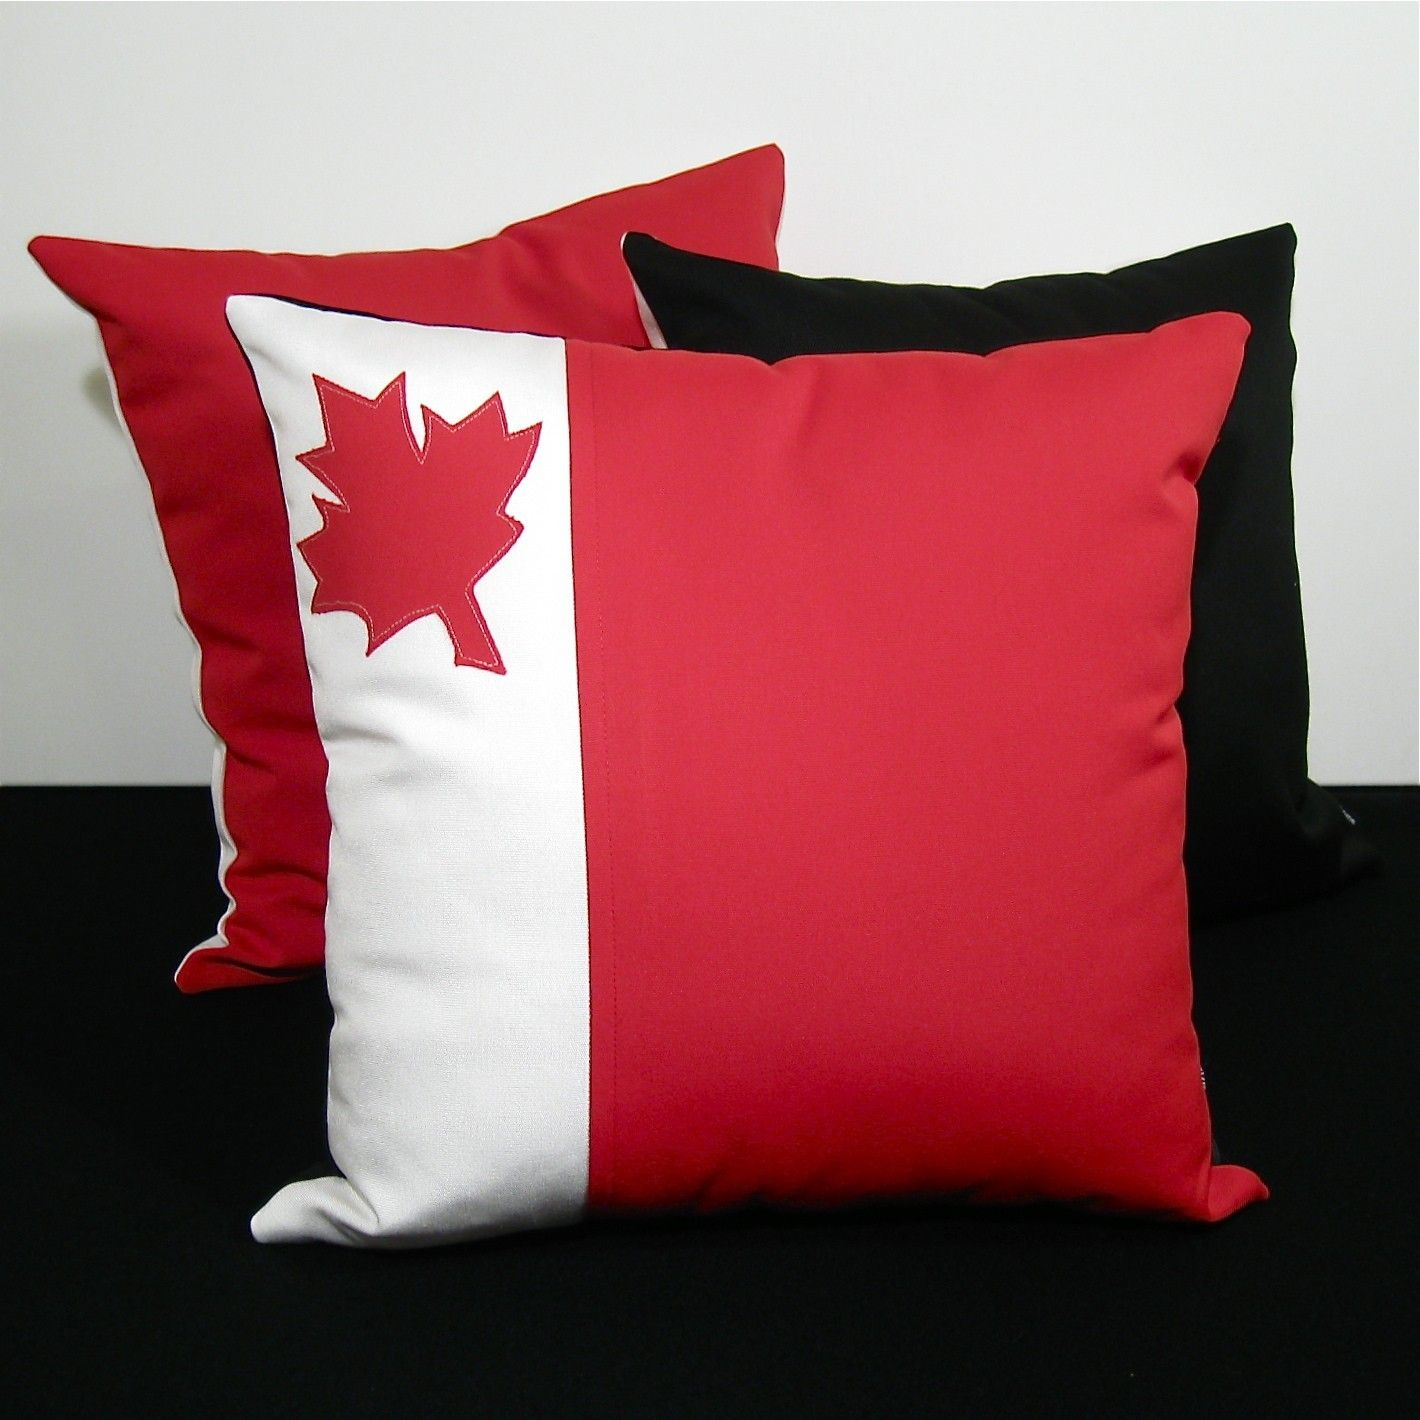 Red White Pillow Cover Canadian Maple Leaf Cushion Decorative Outdoor Canada Flag July 1st Sunbrella 16 Inch White Pillow Covers Pillows Canada Decor